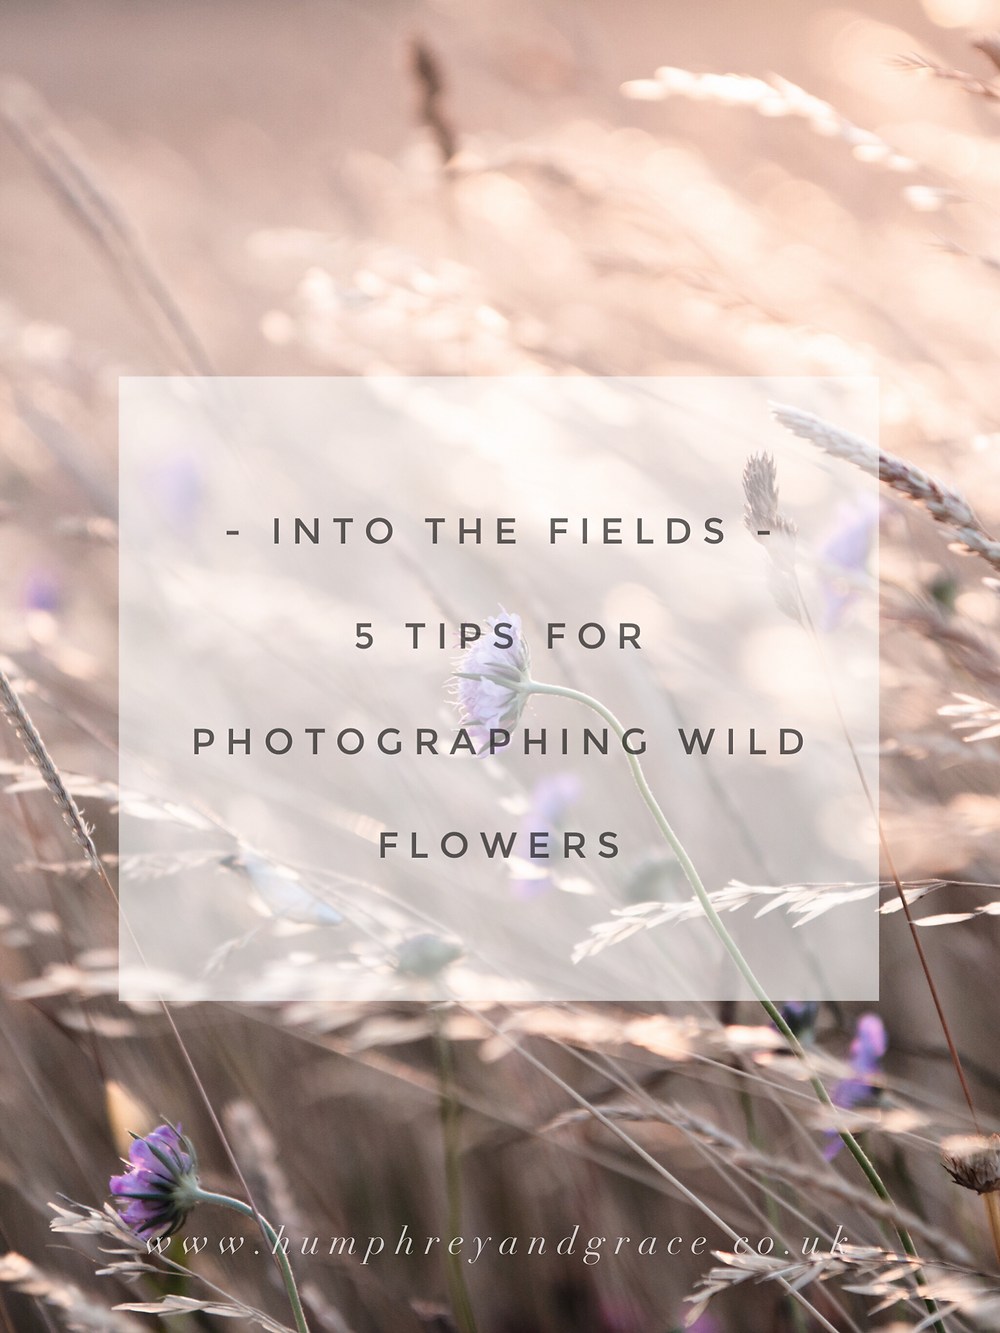 5 tips for photographing wild flowers | humphrey & grace